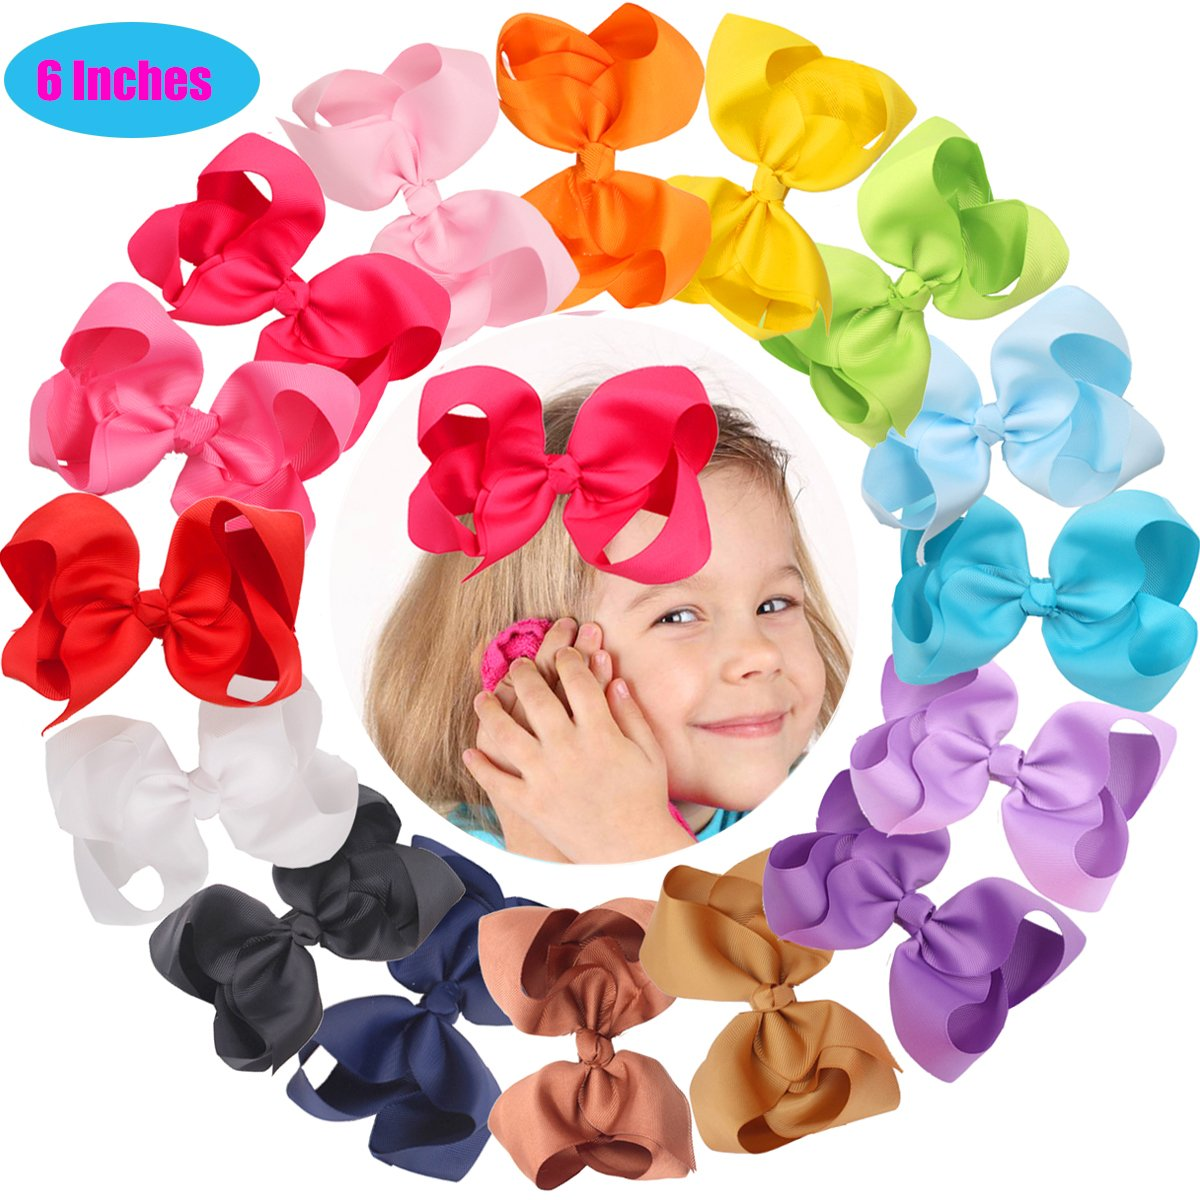 Hair Accessories Bright 40 Pieces 3 Inch Hair Bows Alligator Hair Clips For Baby Girls Toddlers In Pairs